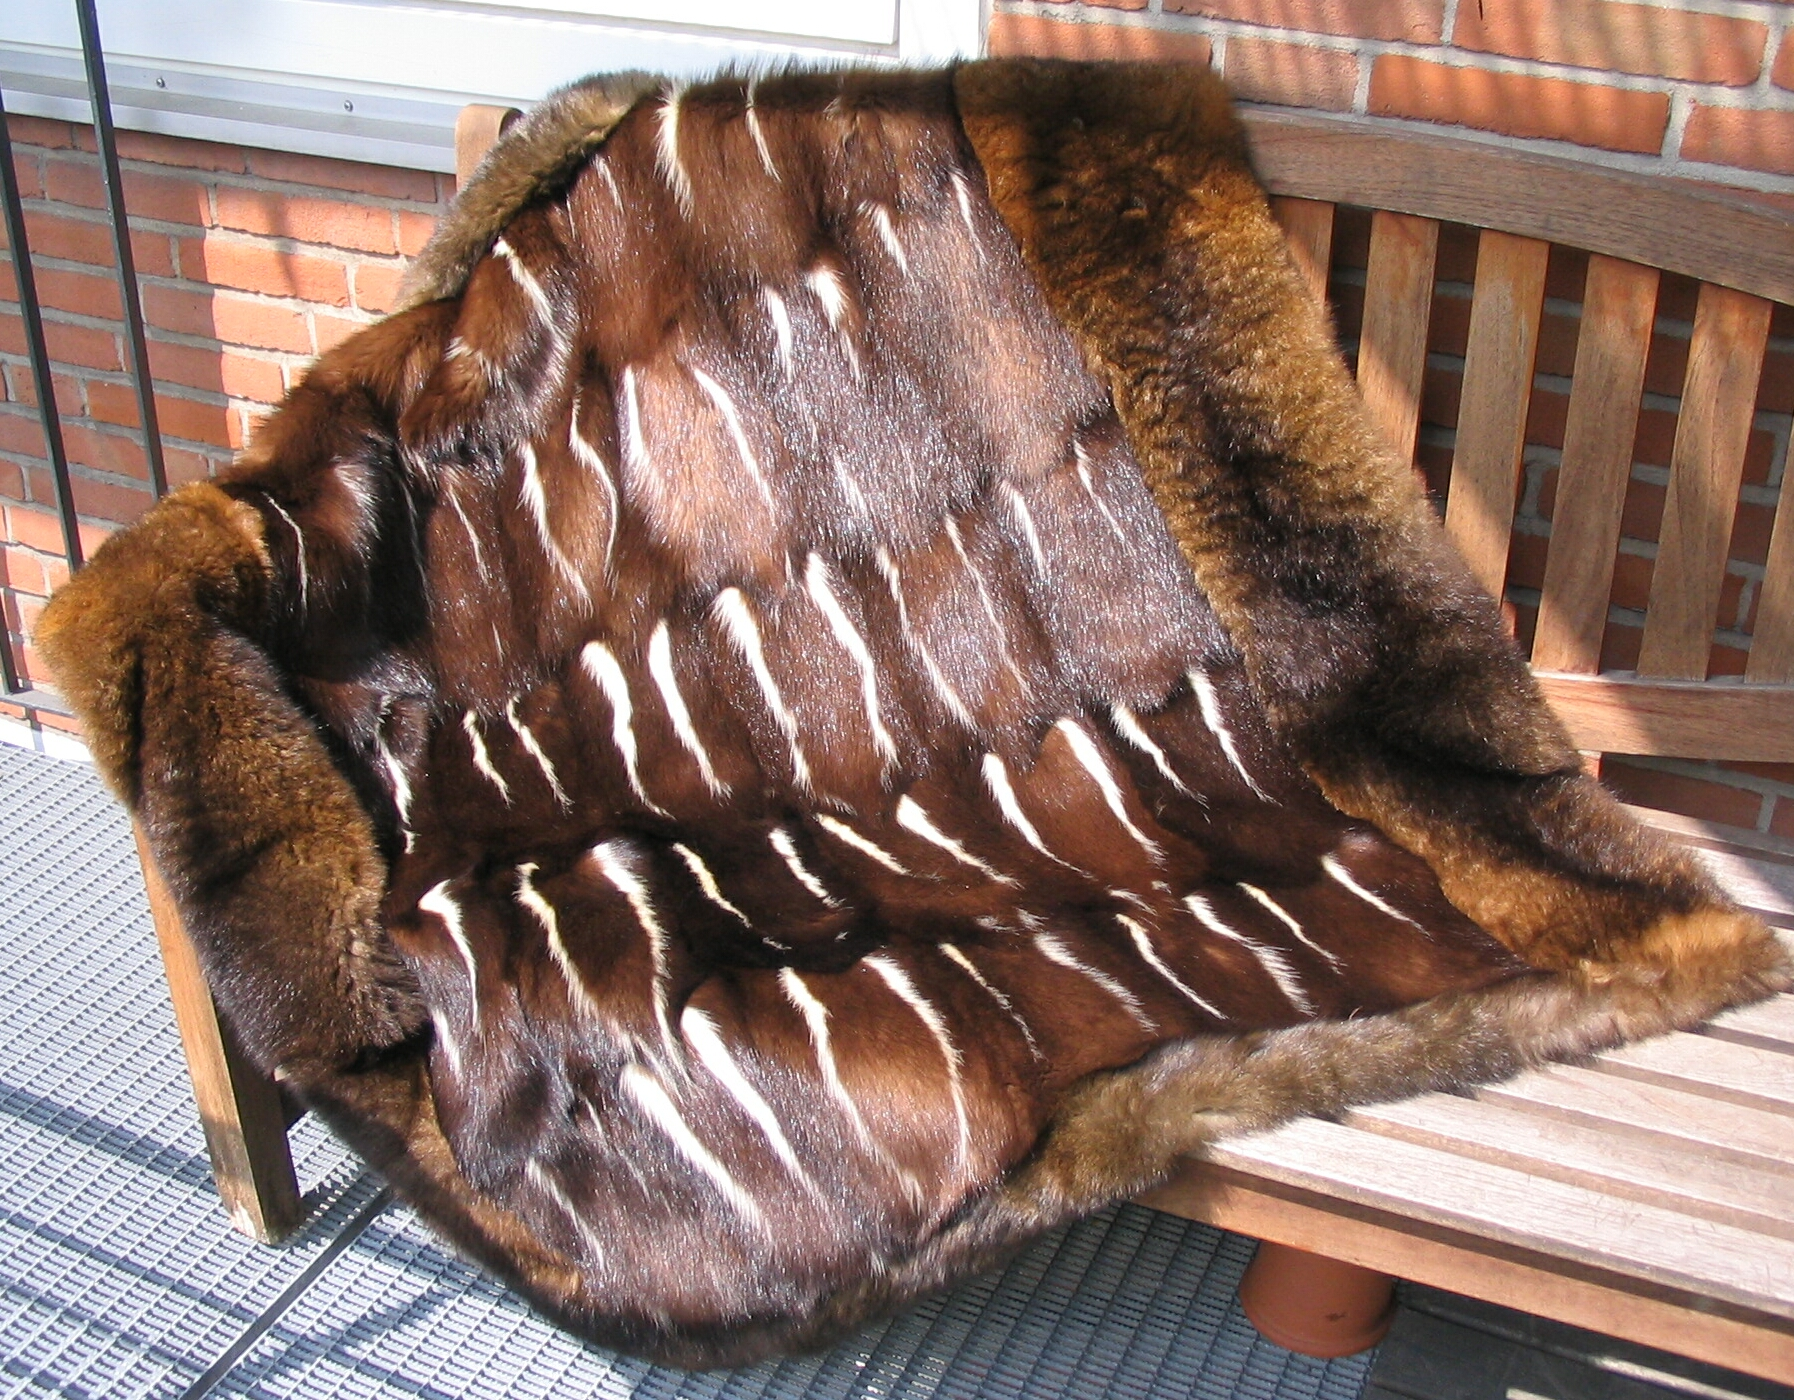 File:Carpet from skunk and possum fur skins.jpg - Wikimedia Commons